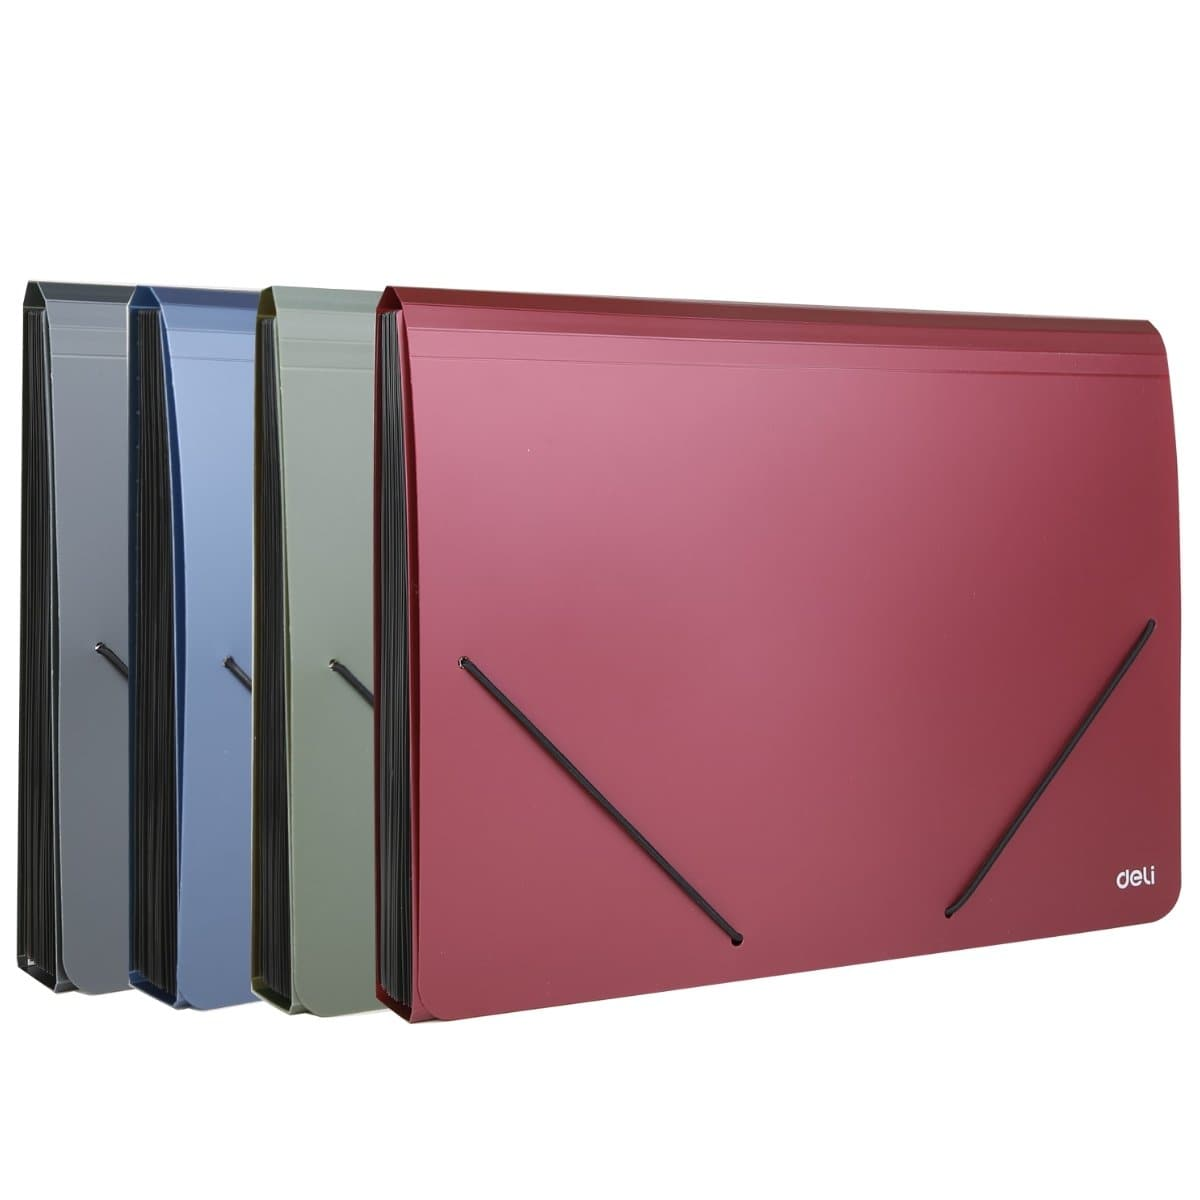 deli Expanding File A4 with elastic fastener, 12 pockets, Assorted Colors